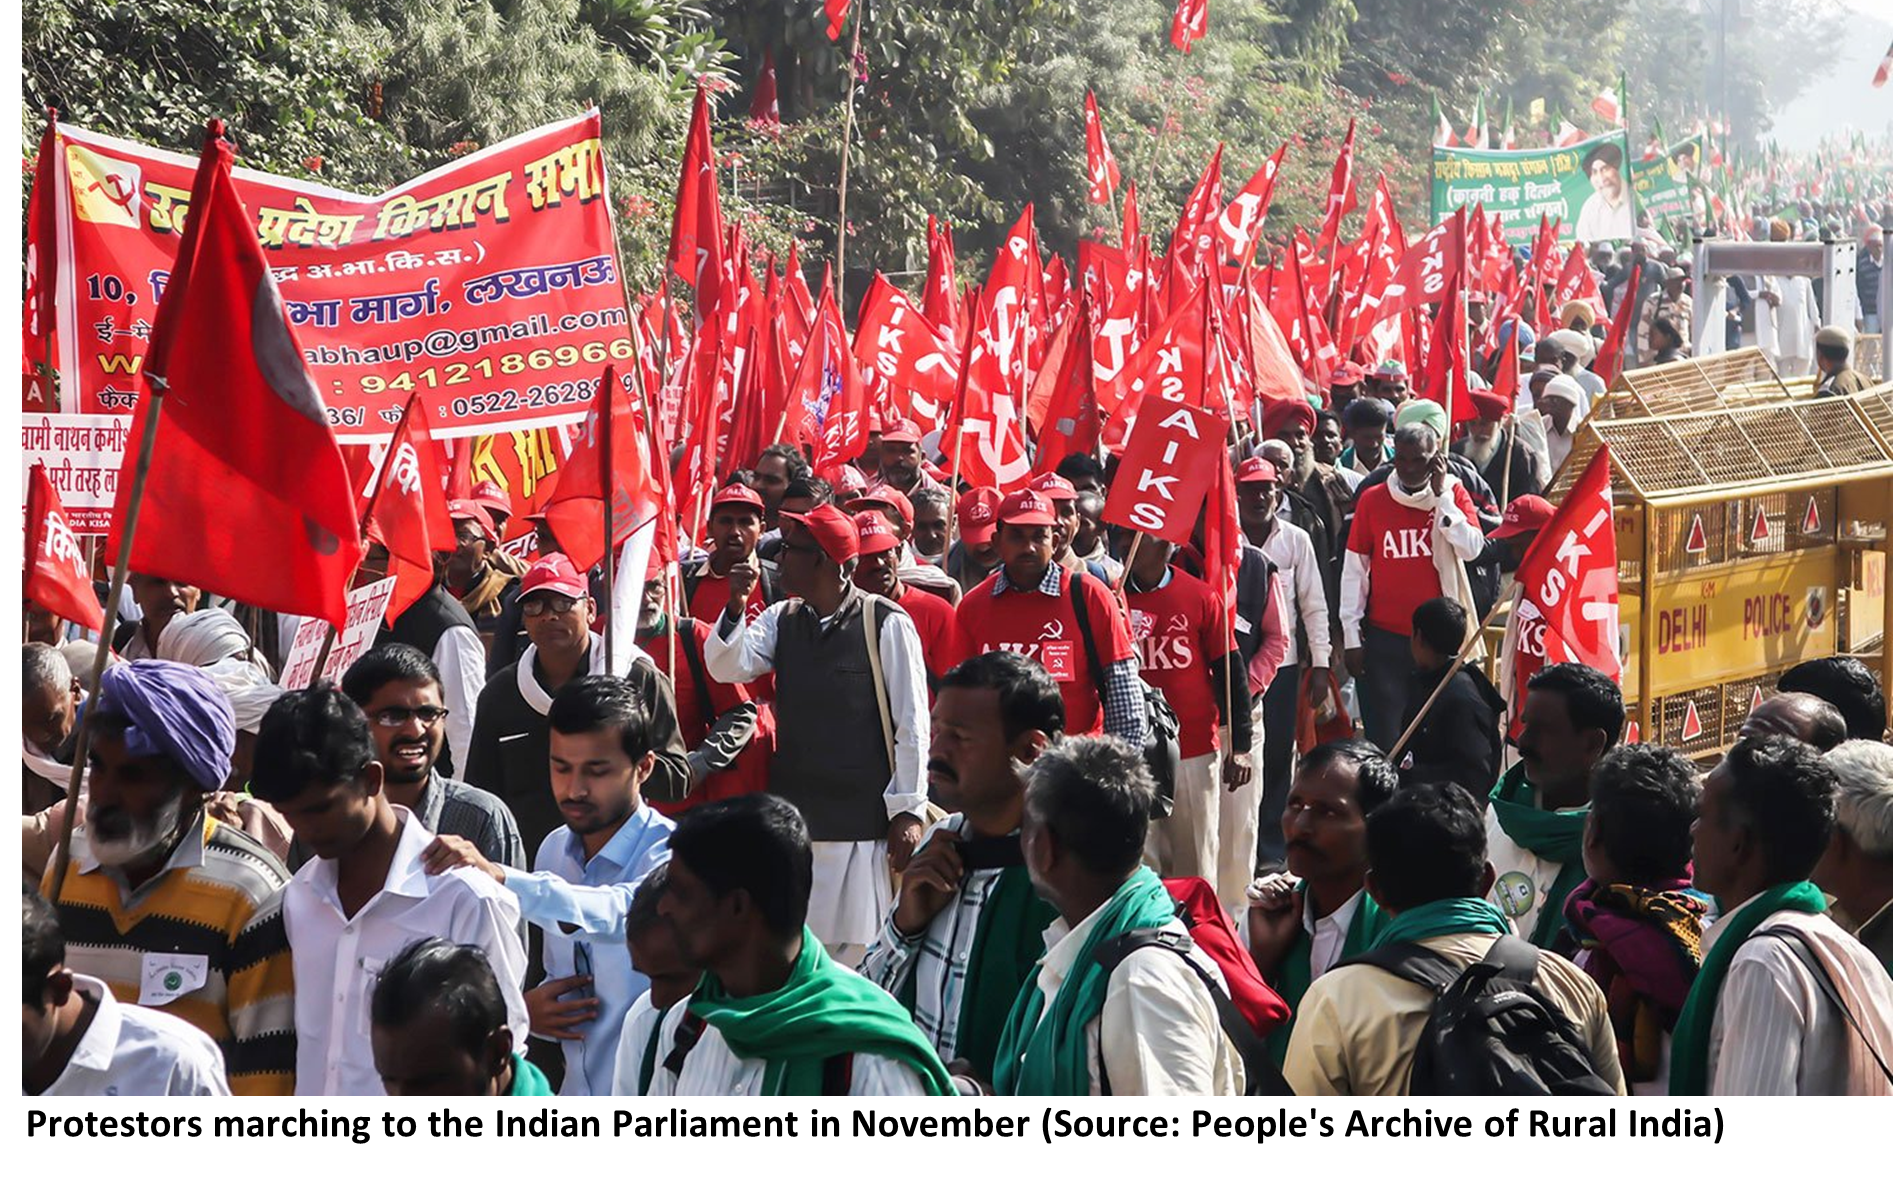 Protestors marching to the Indian Parliament in November